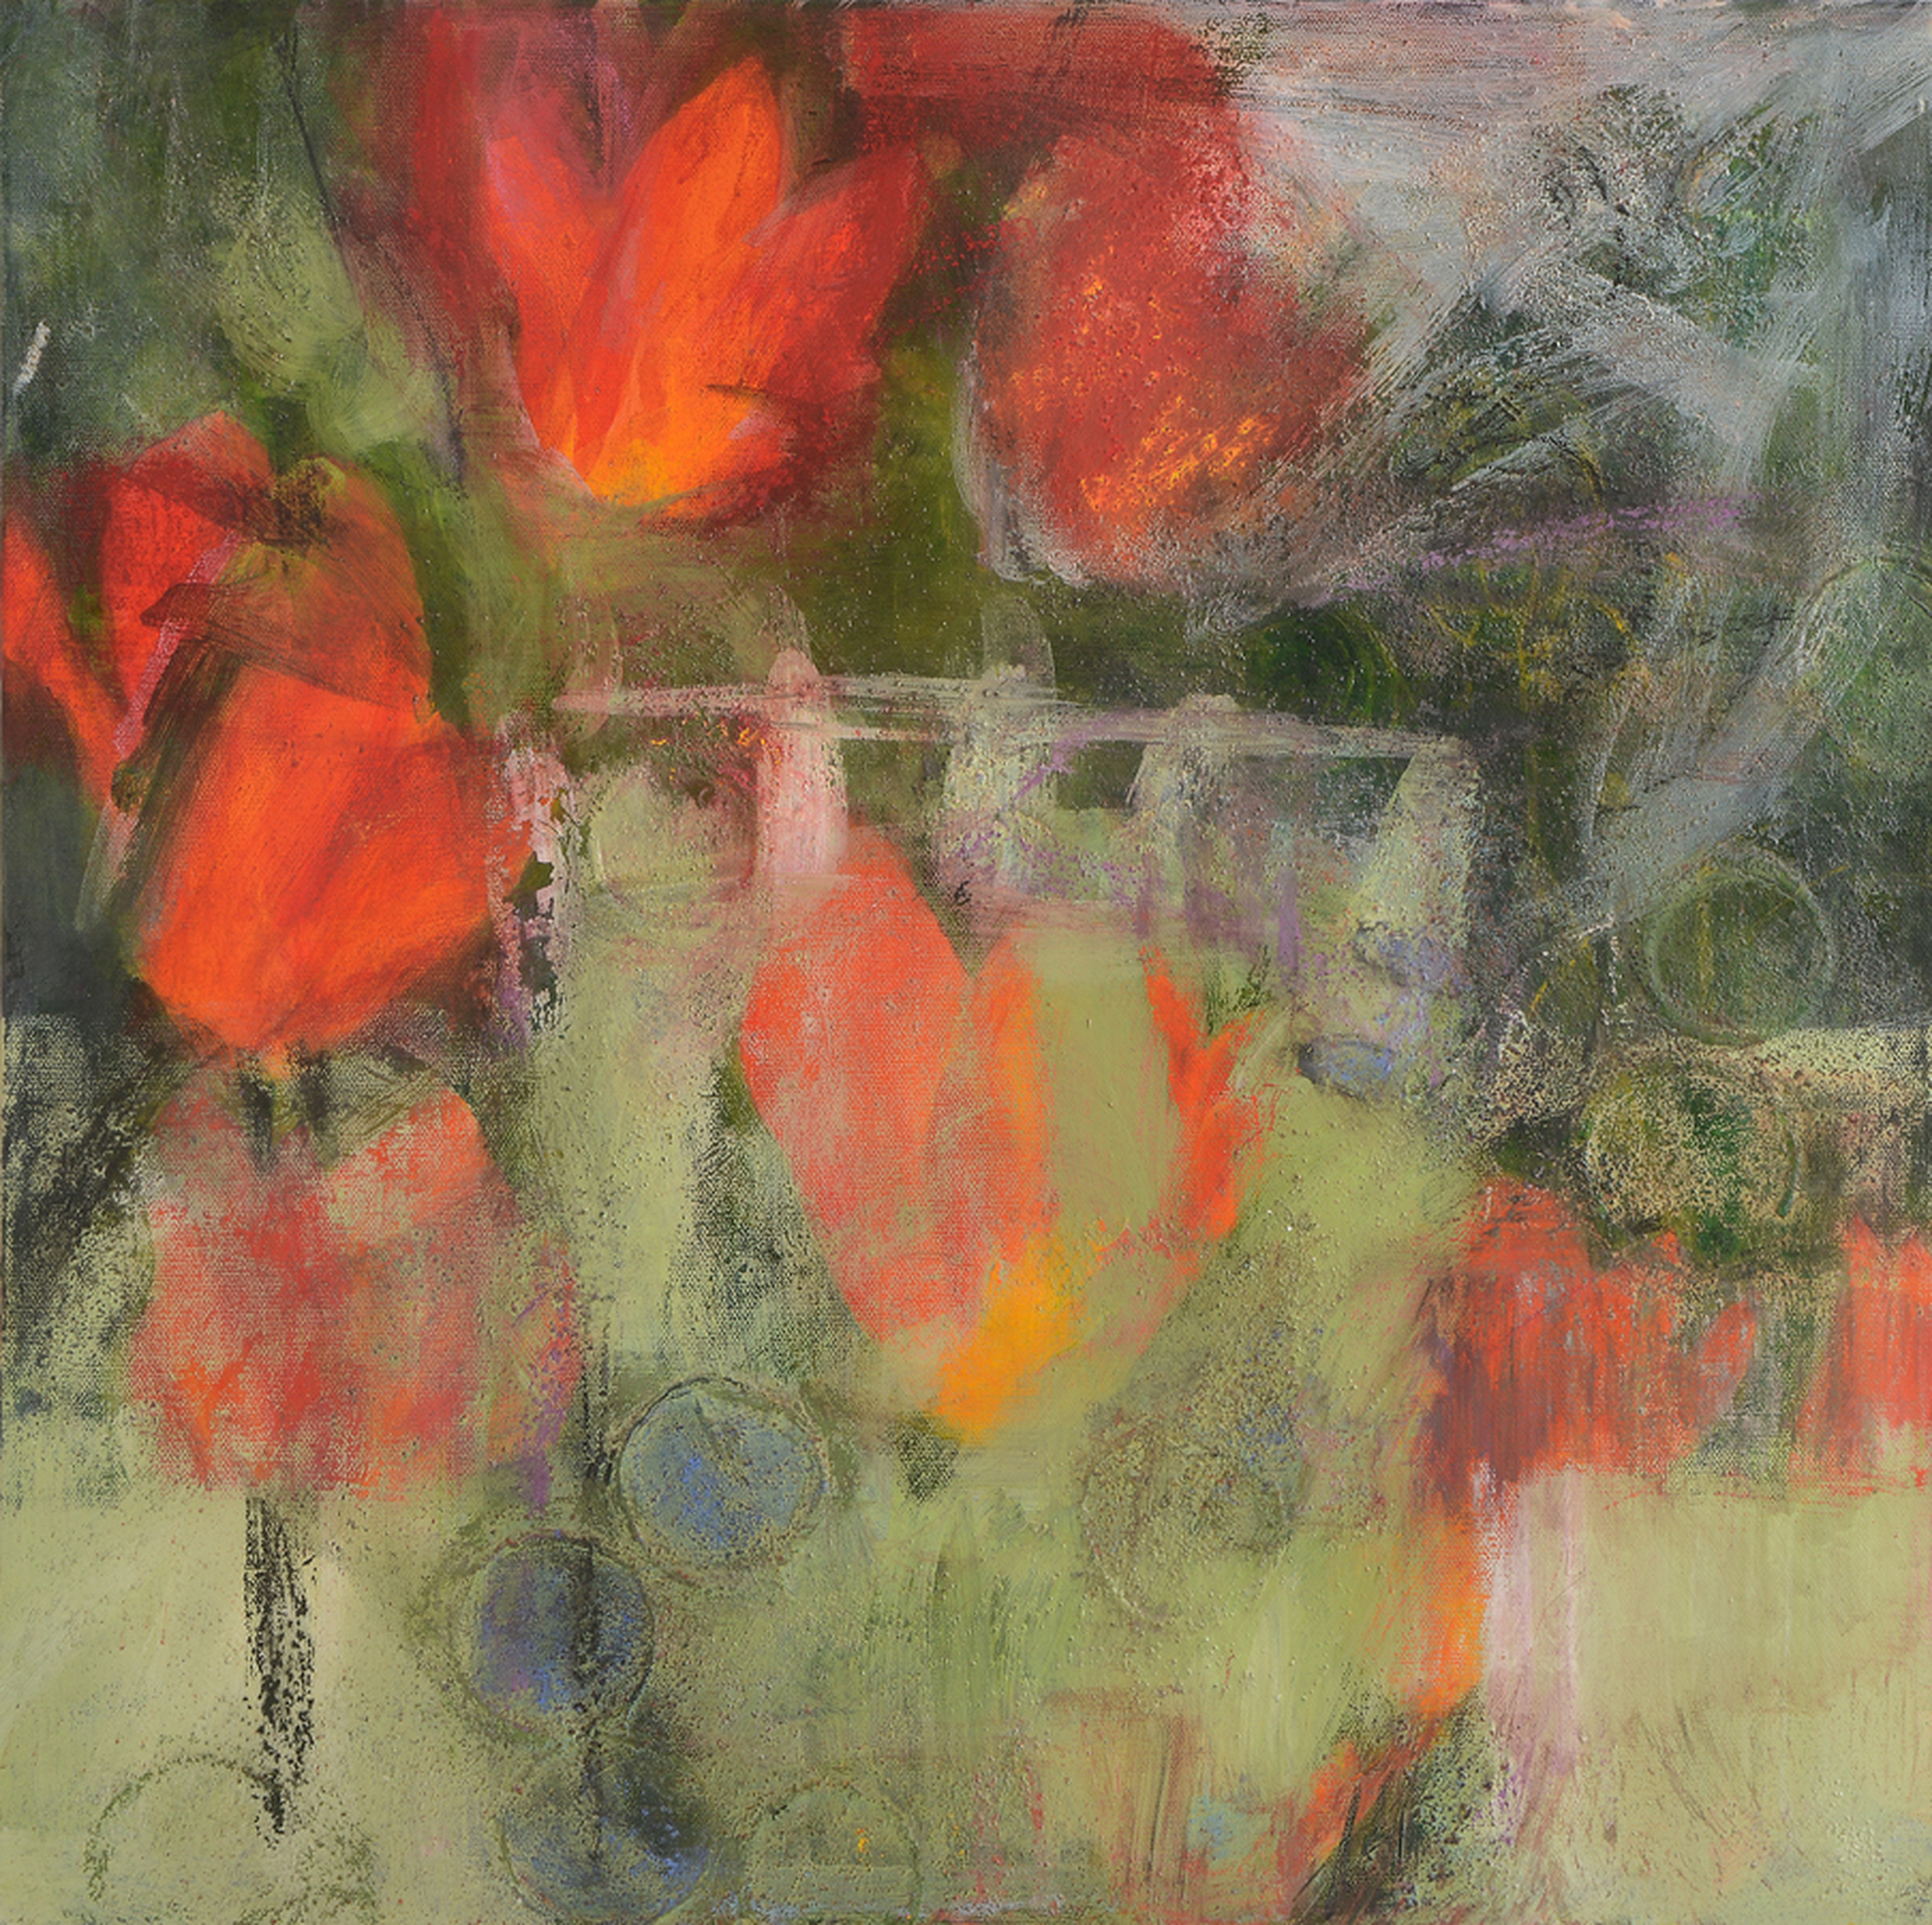 Where Does the Time Go by Marla Sullivan | ArtworkNetwork.com